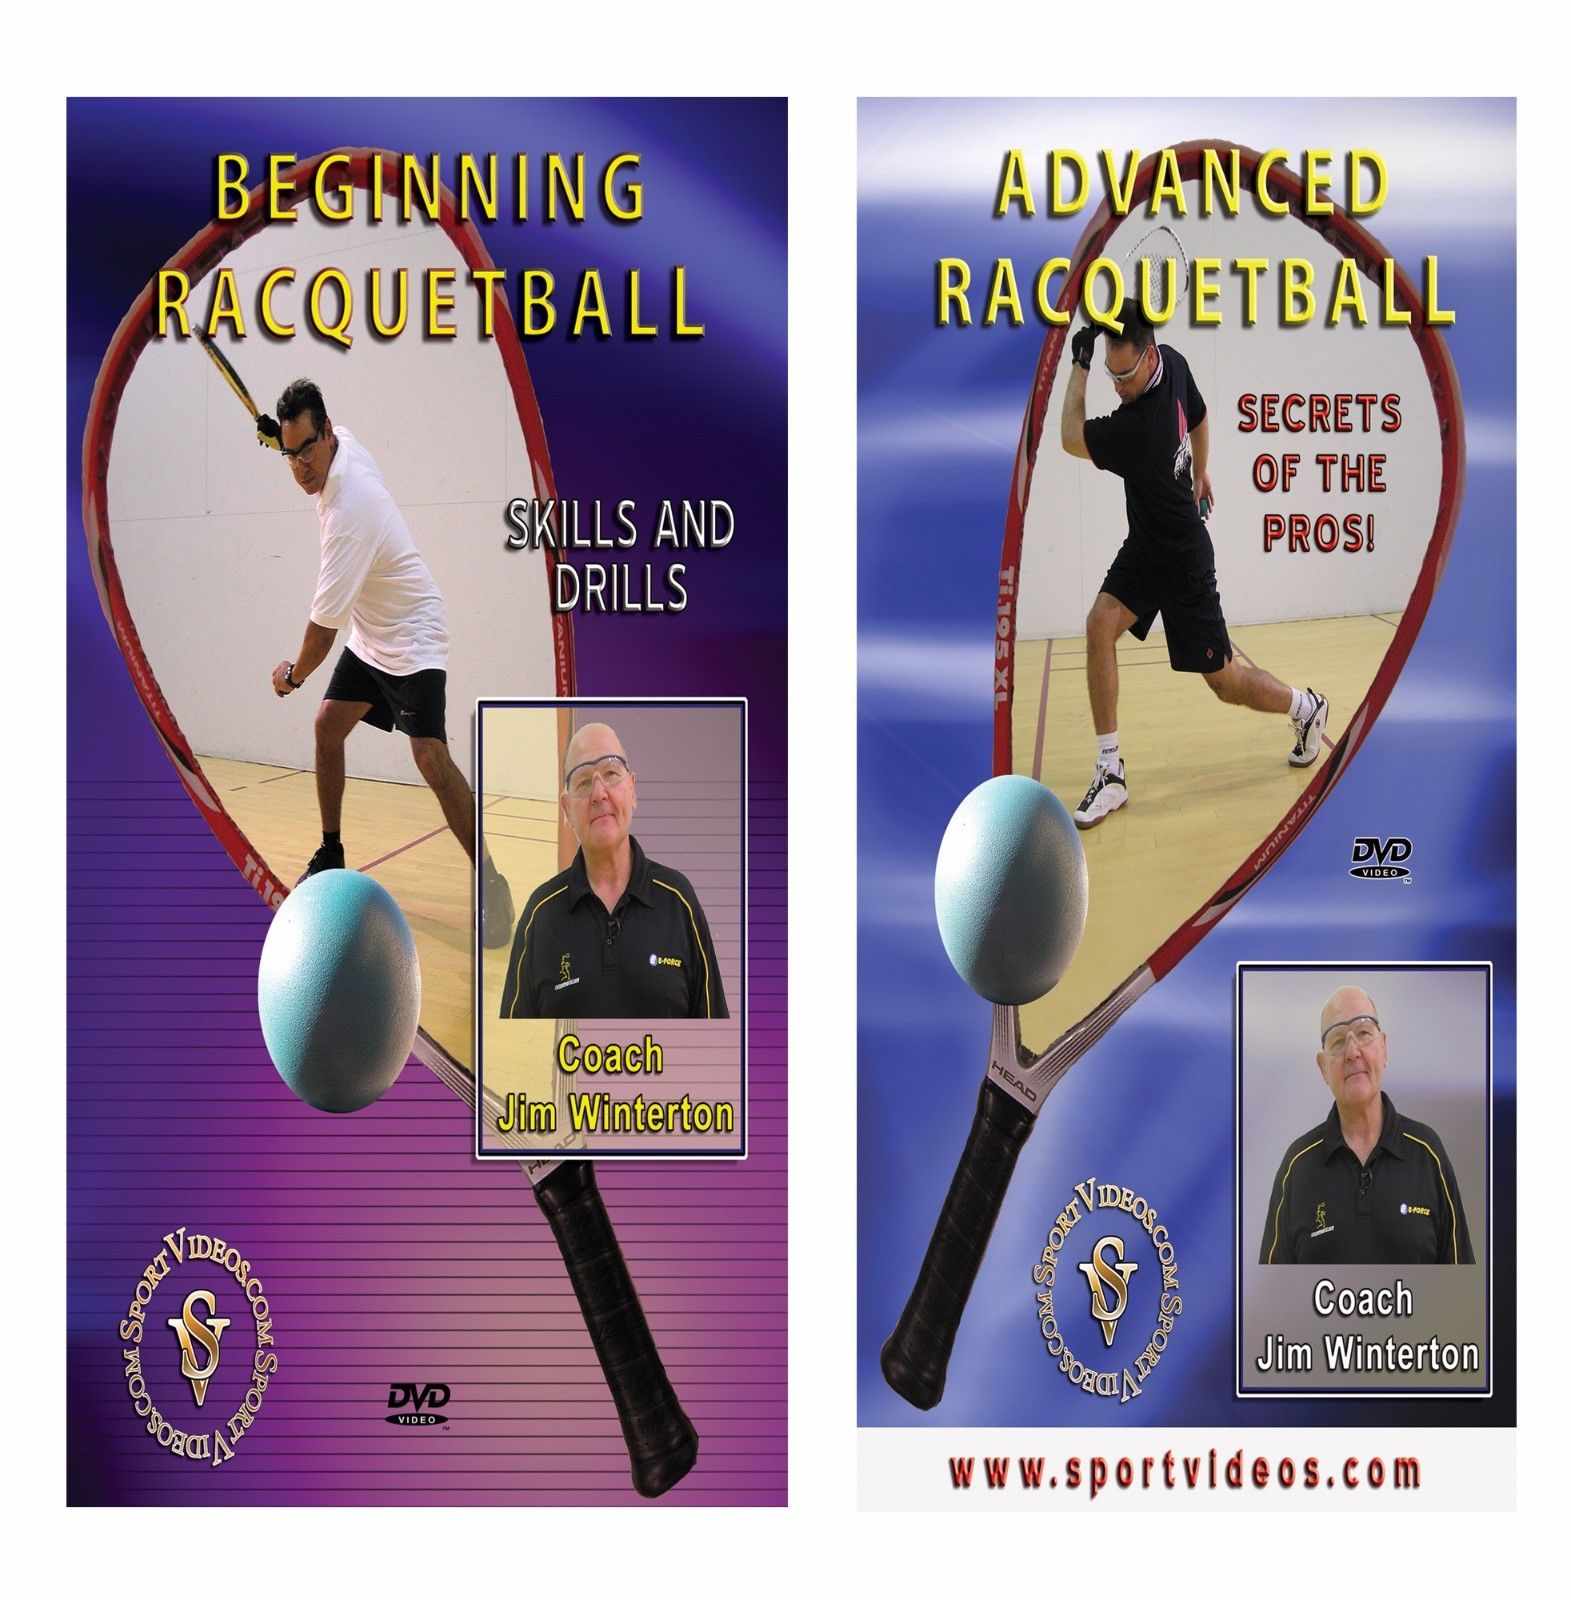 Coach Jim Winterton Racquetball DVD or Download Set - Free Shipping